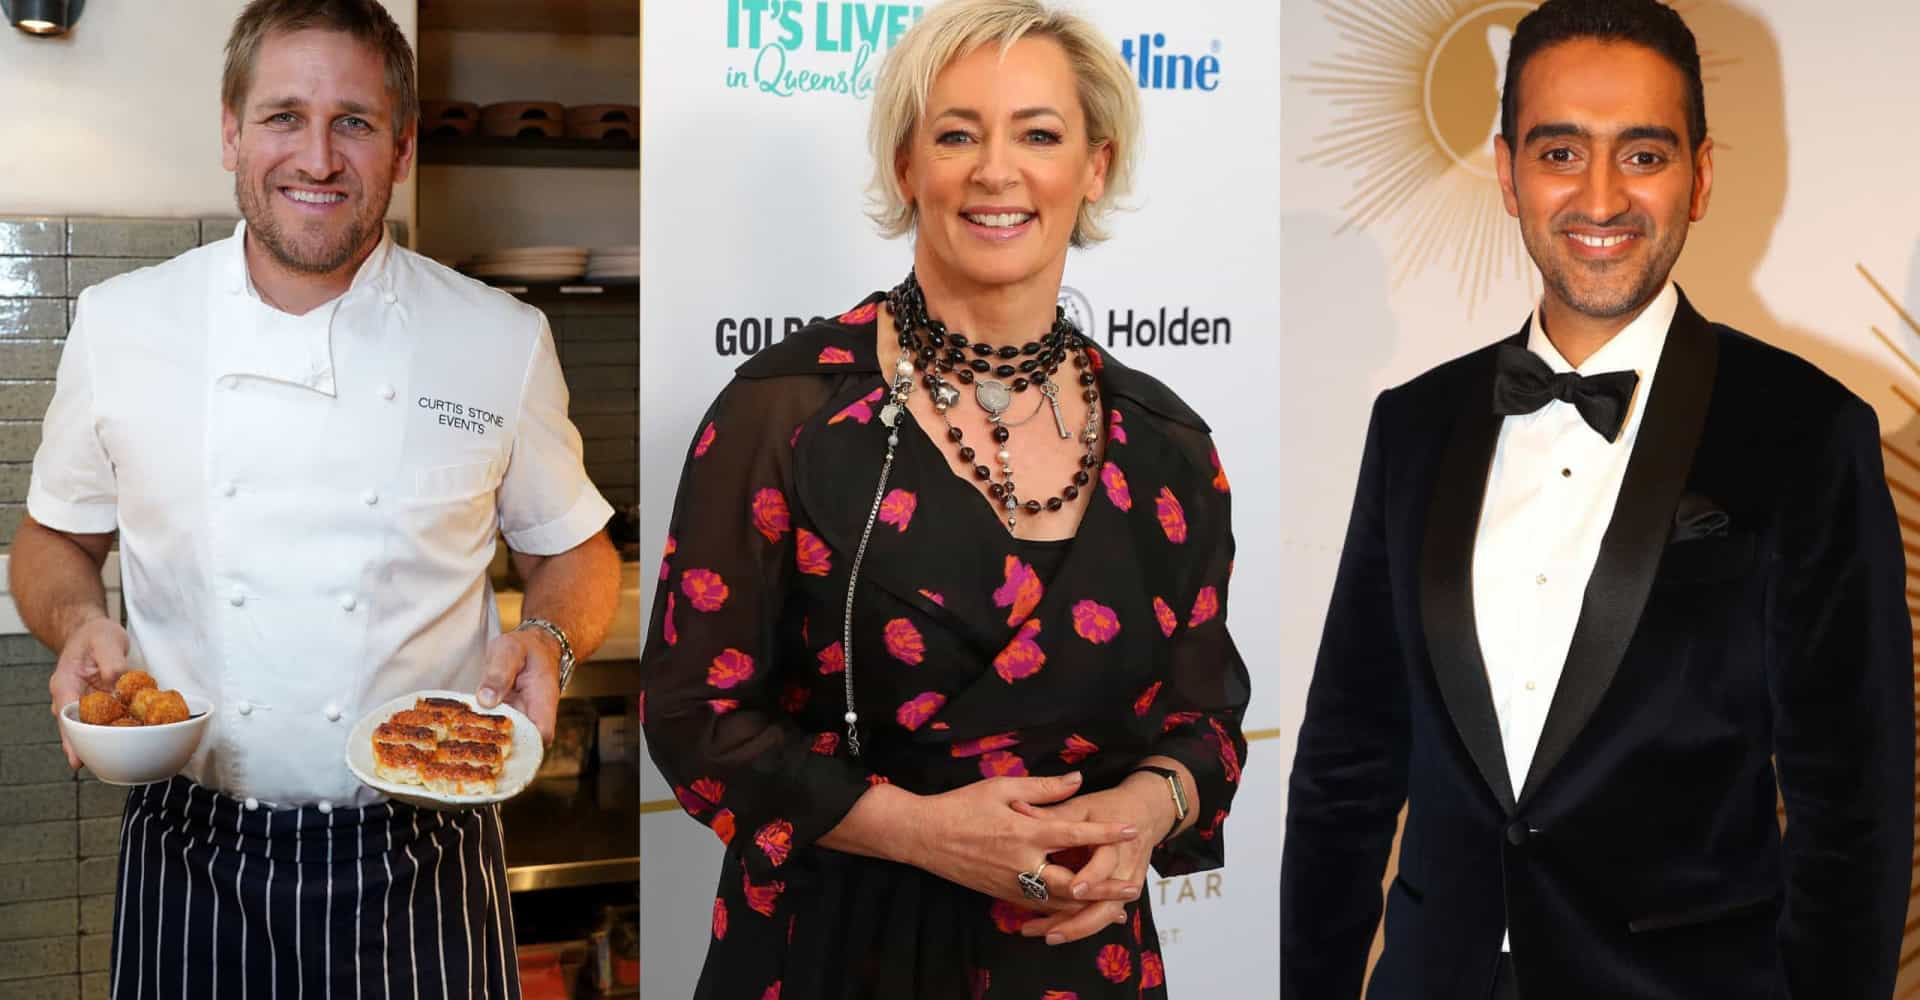 The most popular media personalities in Australia